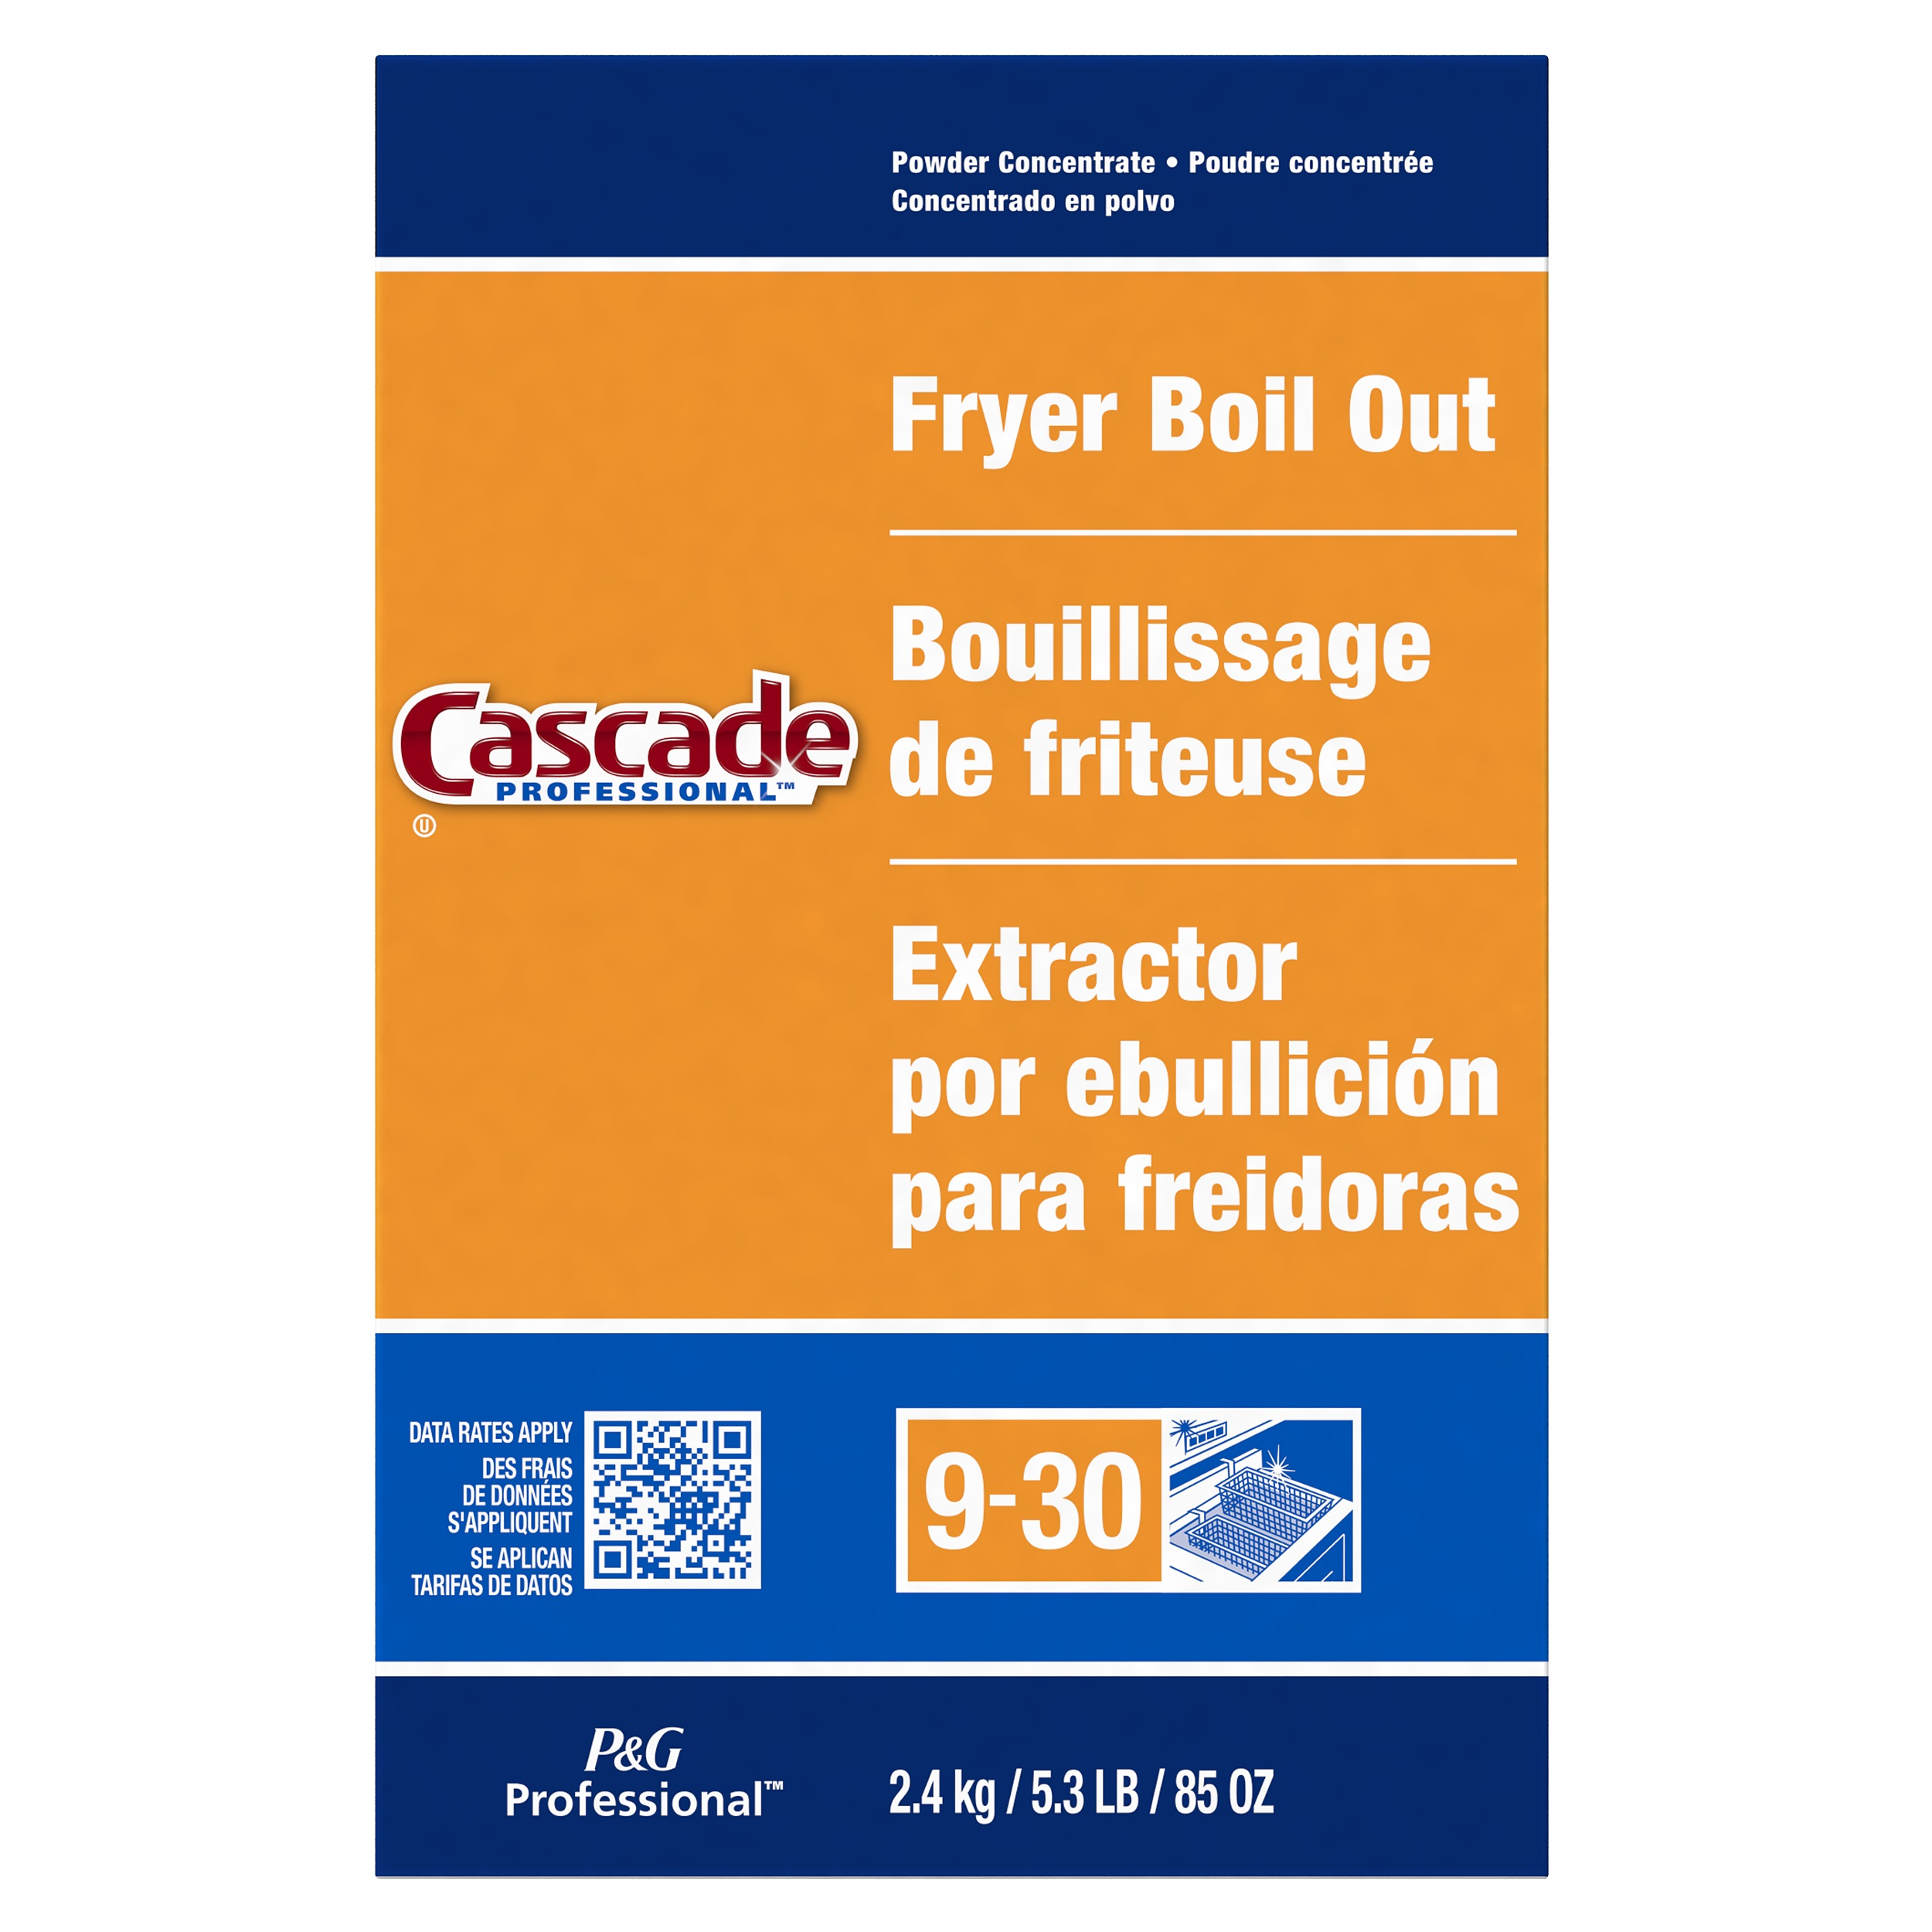 Cascade Professional Fryer Boil Out, Concentrated Powder, 85 oz Box,  6/Carton